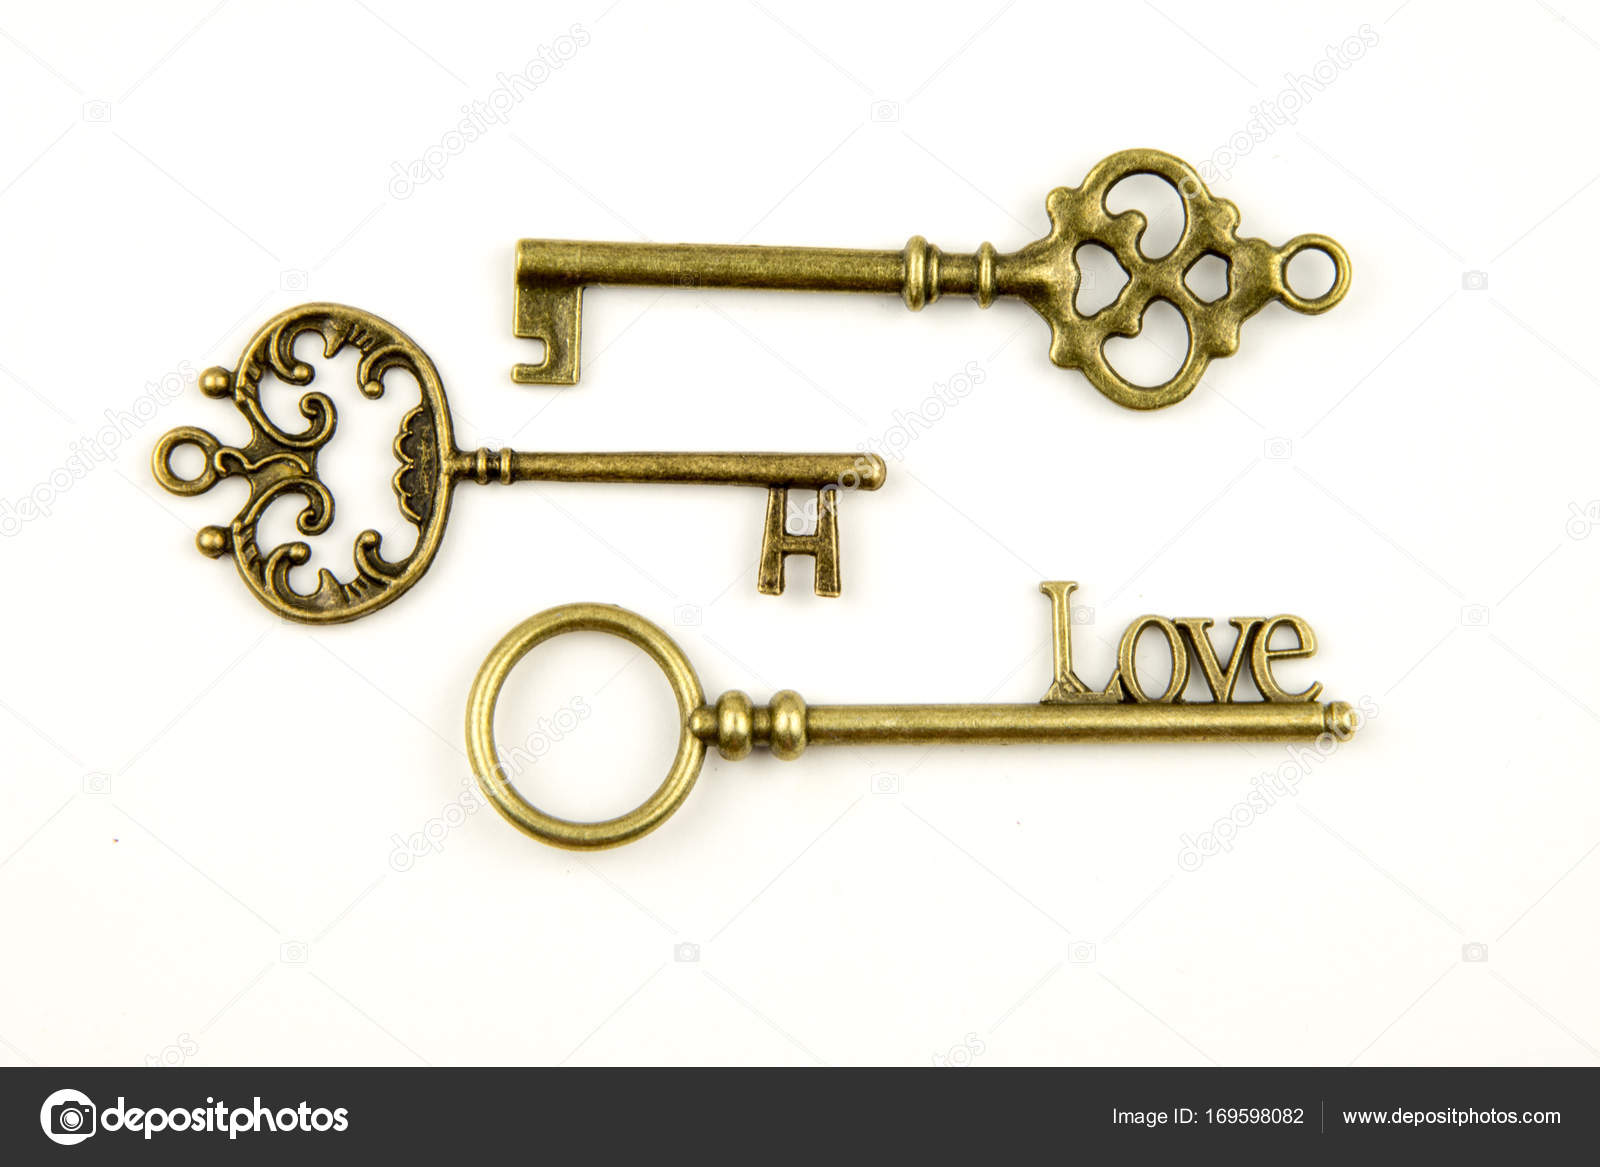 ... with intricate forging composed of fleur-de-lis elements victorian leaf scrolls and heart shaped swirls. antique golden door key u2014 Photo by ann_minsk  sc 1 st  Depositphotos & Ornamental medieval vintage keys with intricate forging composed of ...